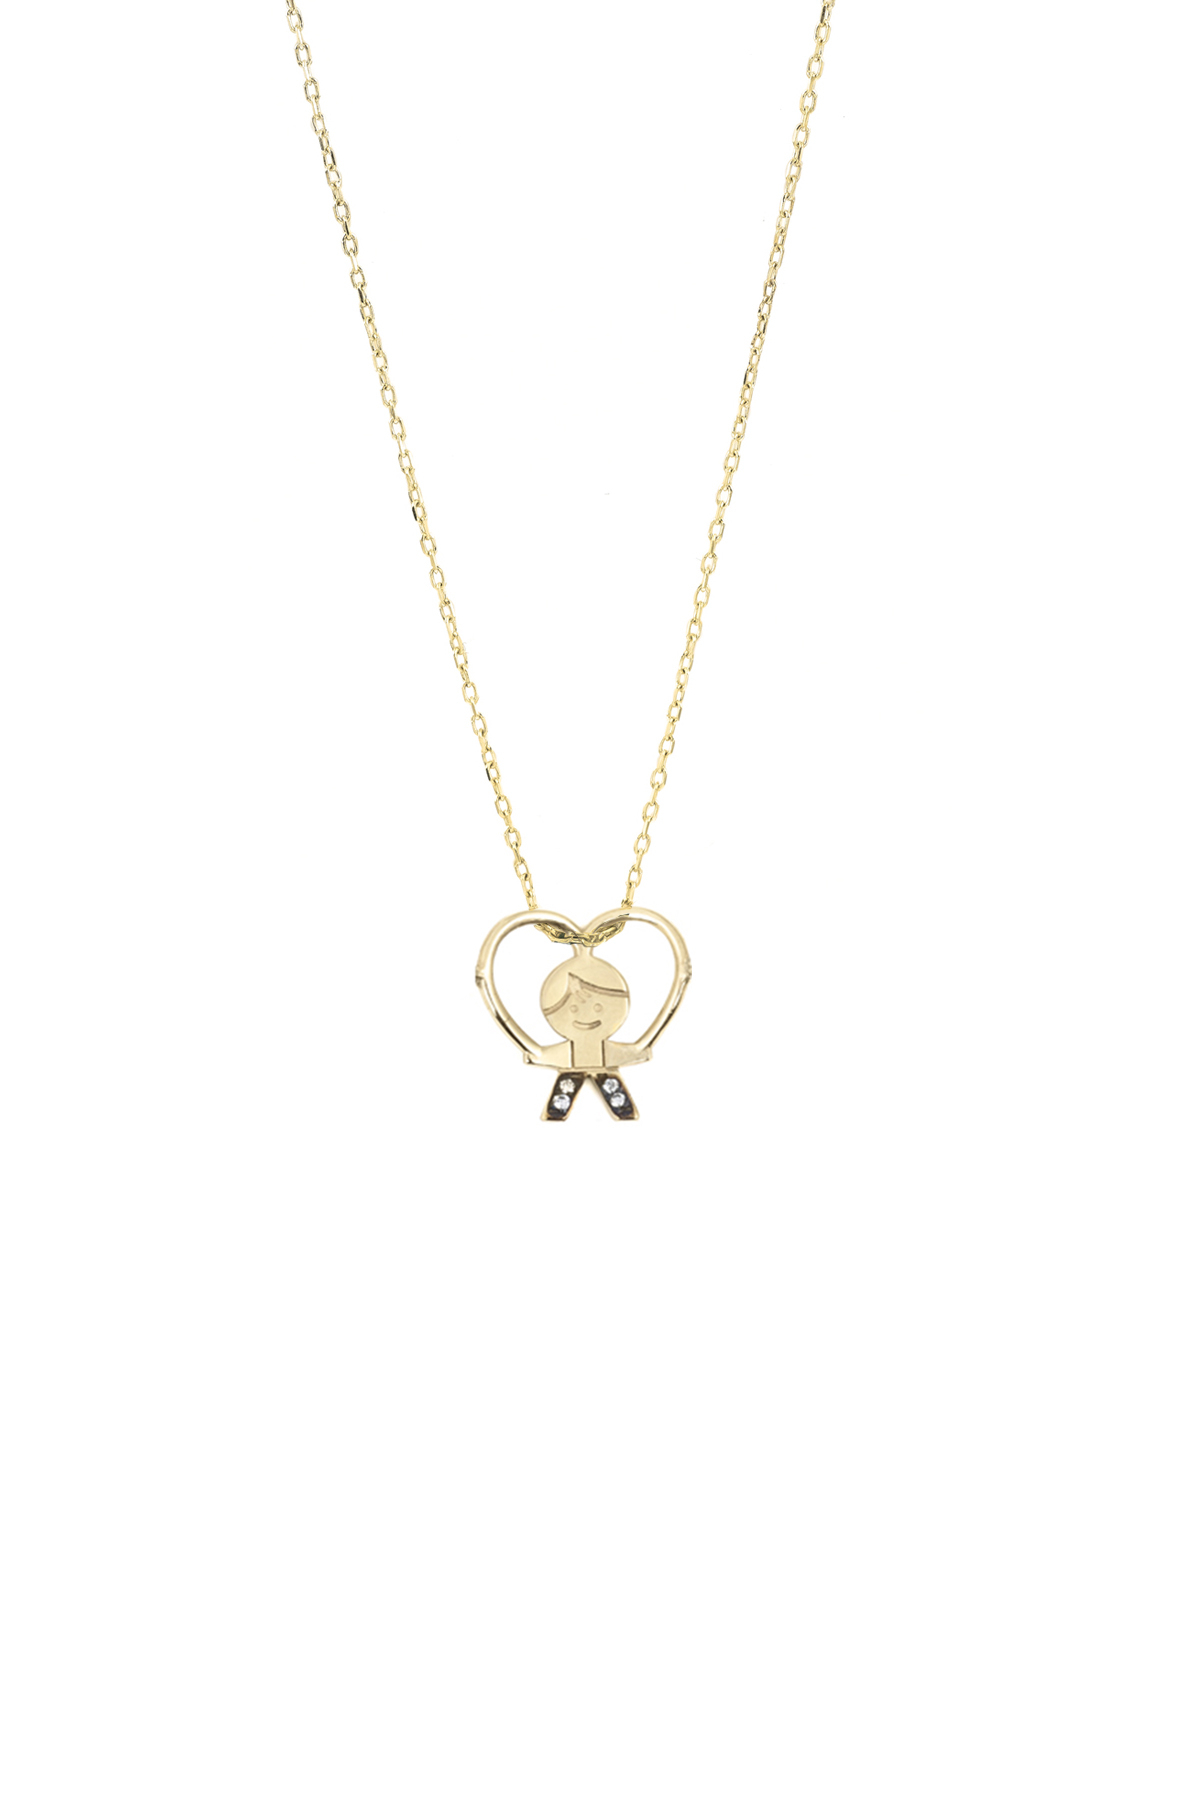 Pepe In Love – Boy Heart Necklace – Charm Necklace | App In Current Love & Family Petite Locket Charms Necklaces (View 20 of 25)